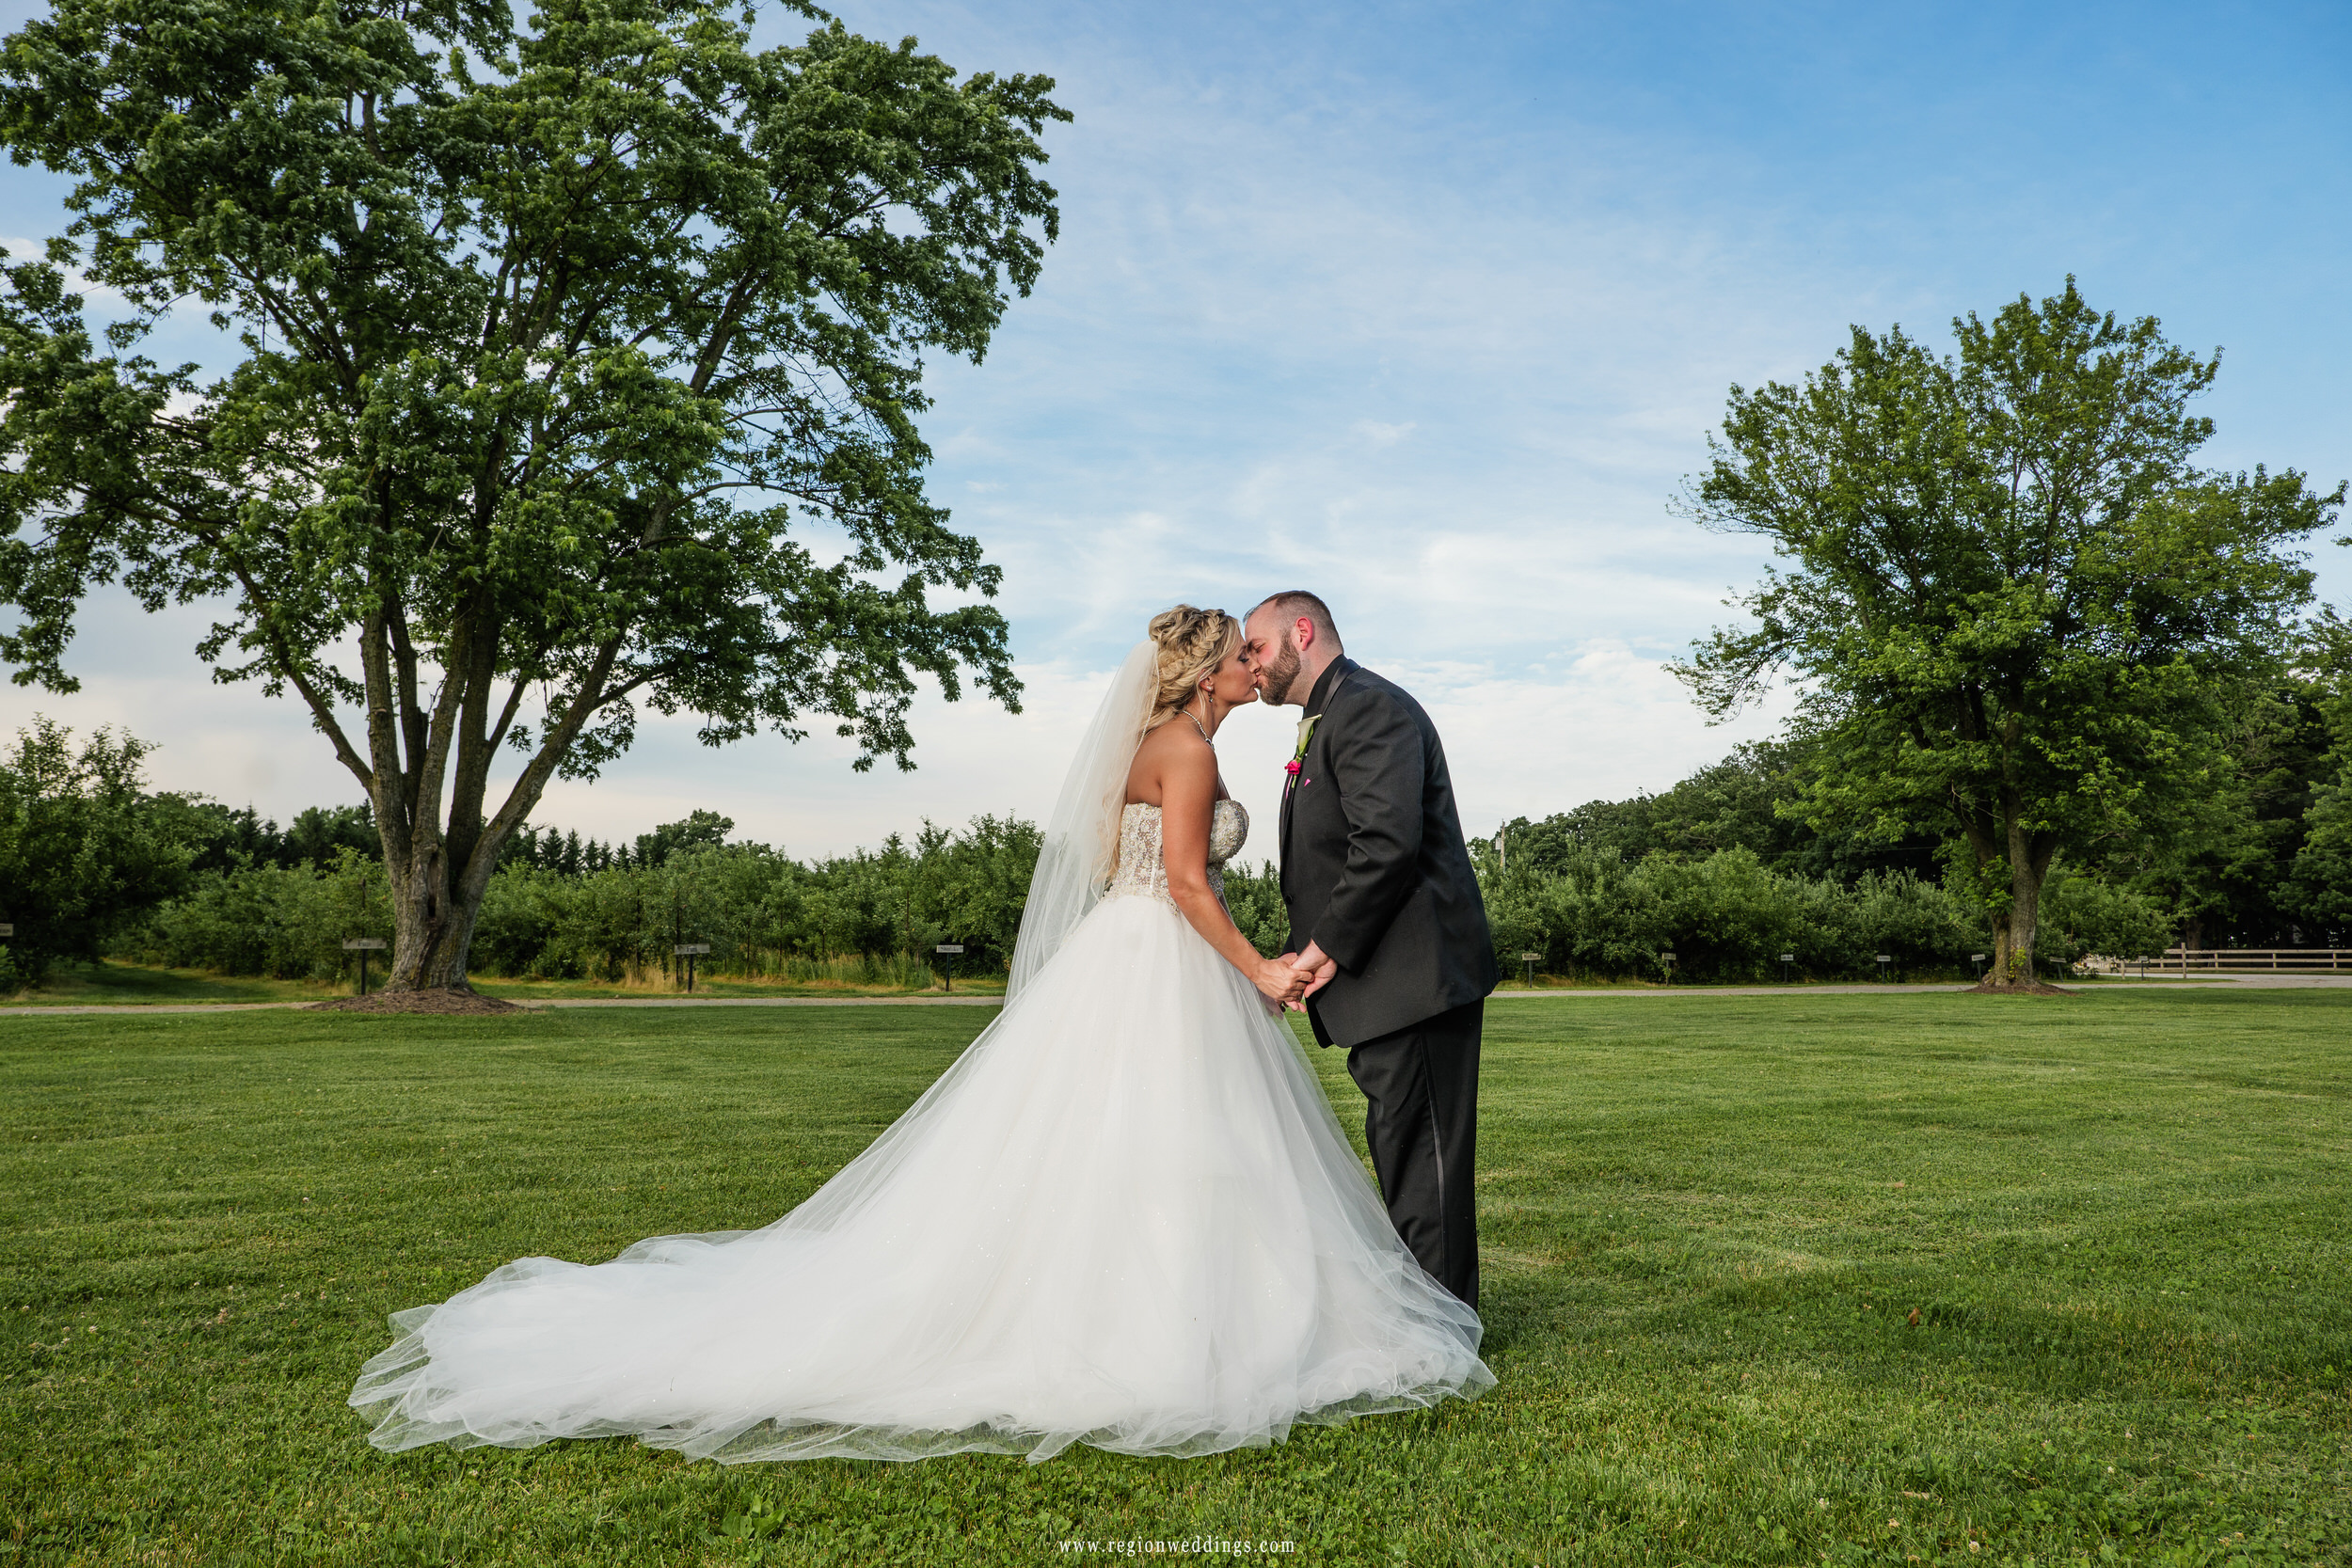 The bride and groom share a kiss between two trees at County Line Orchard.